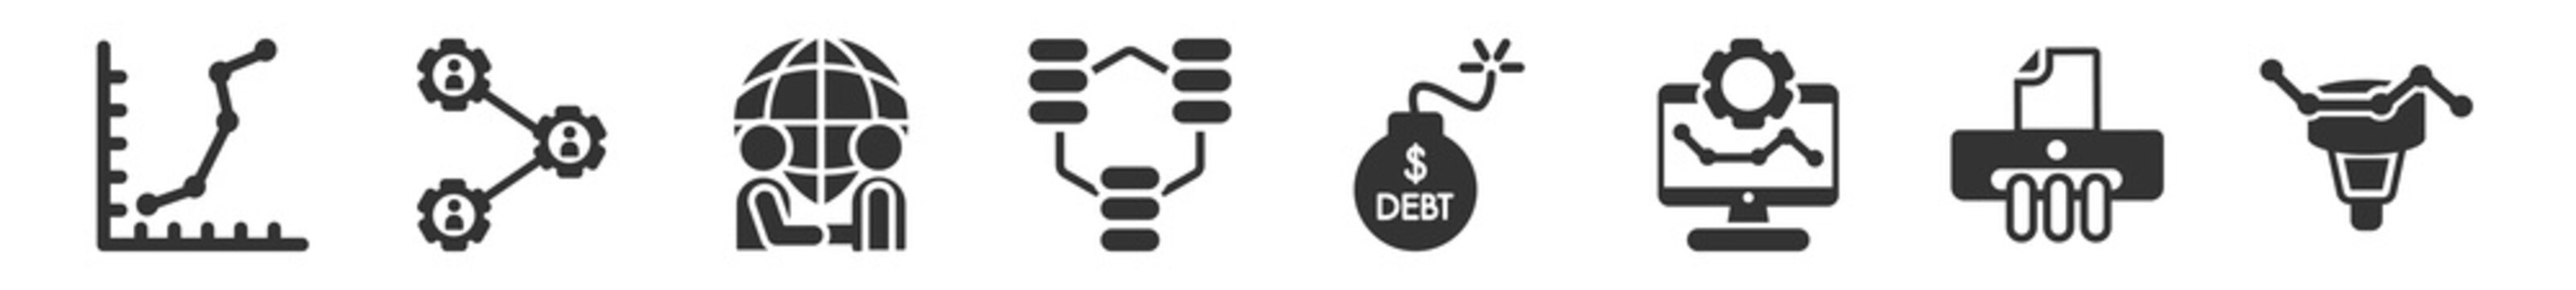 filled set of business and analytics icons. glyph vector icons such as dot, users interconnected, partnership, connected data, debt, funneling data. vector illustration.